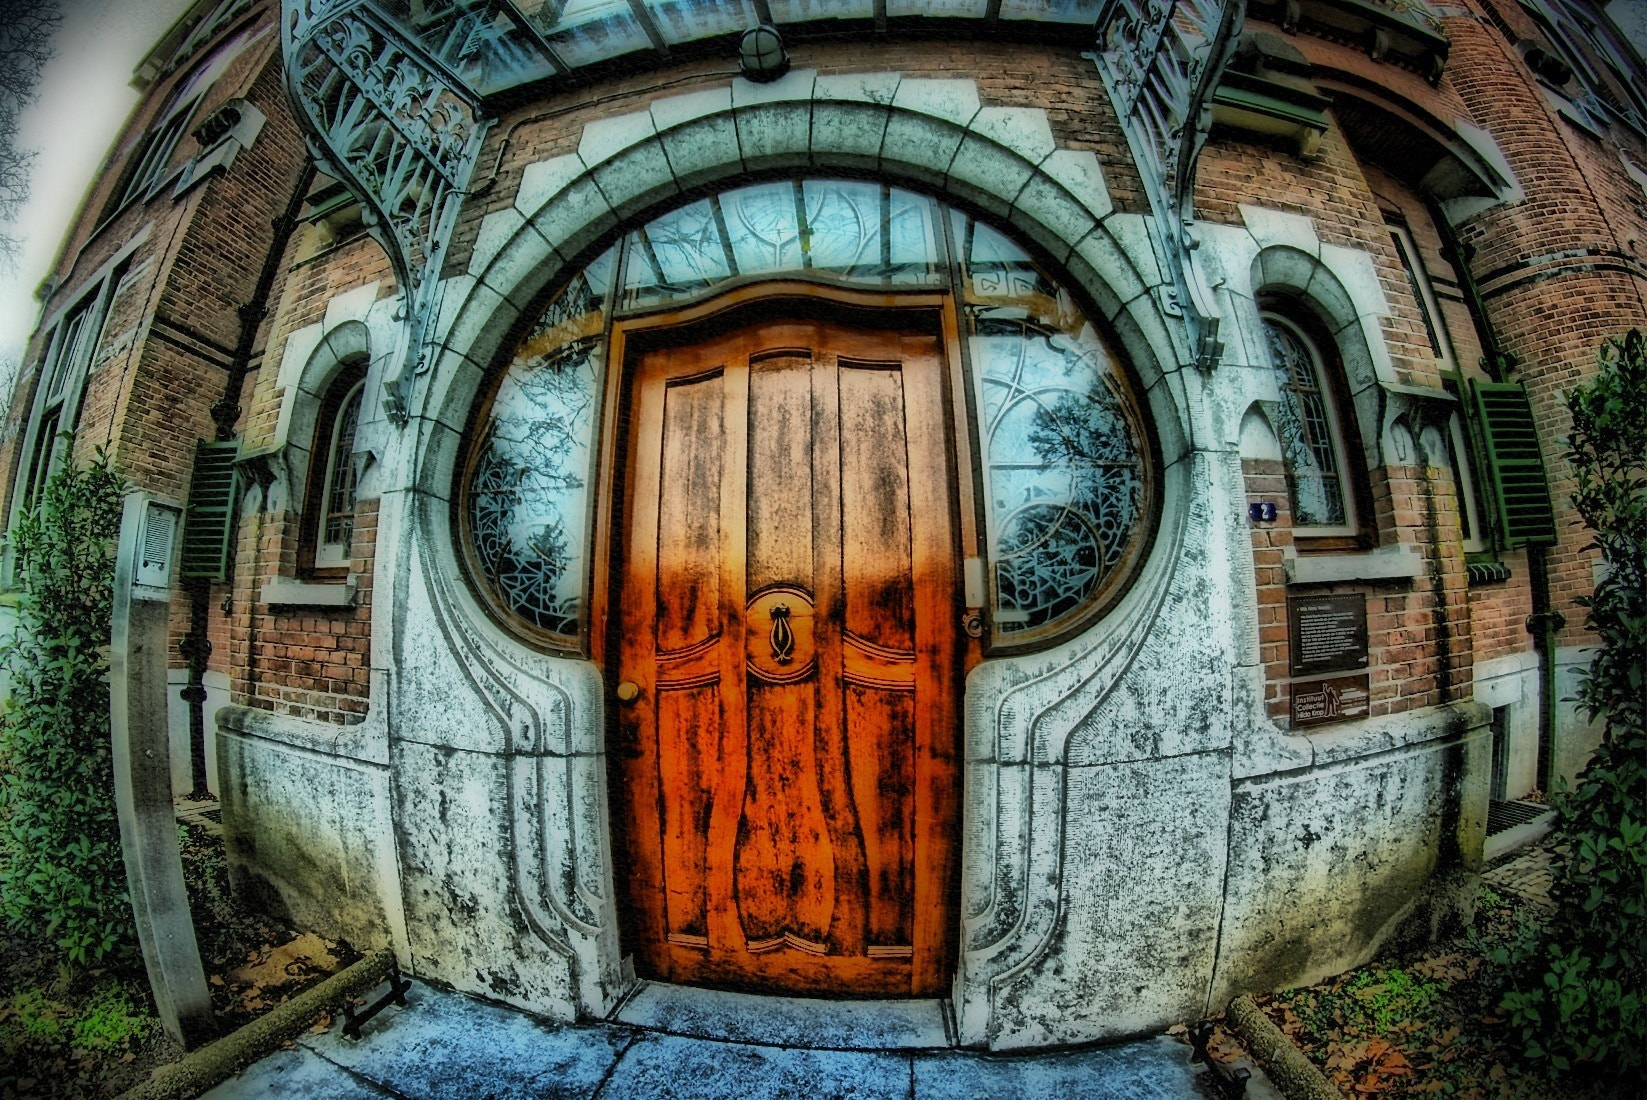 Photograph Enter by Roderik van Loef on 500px